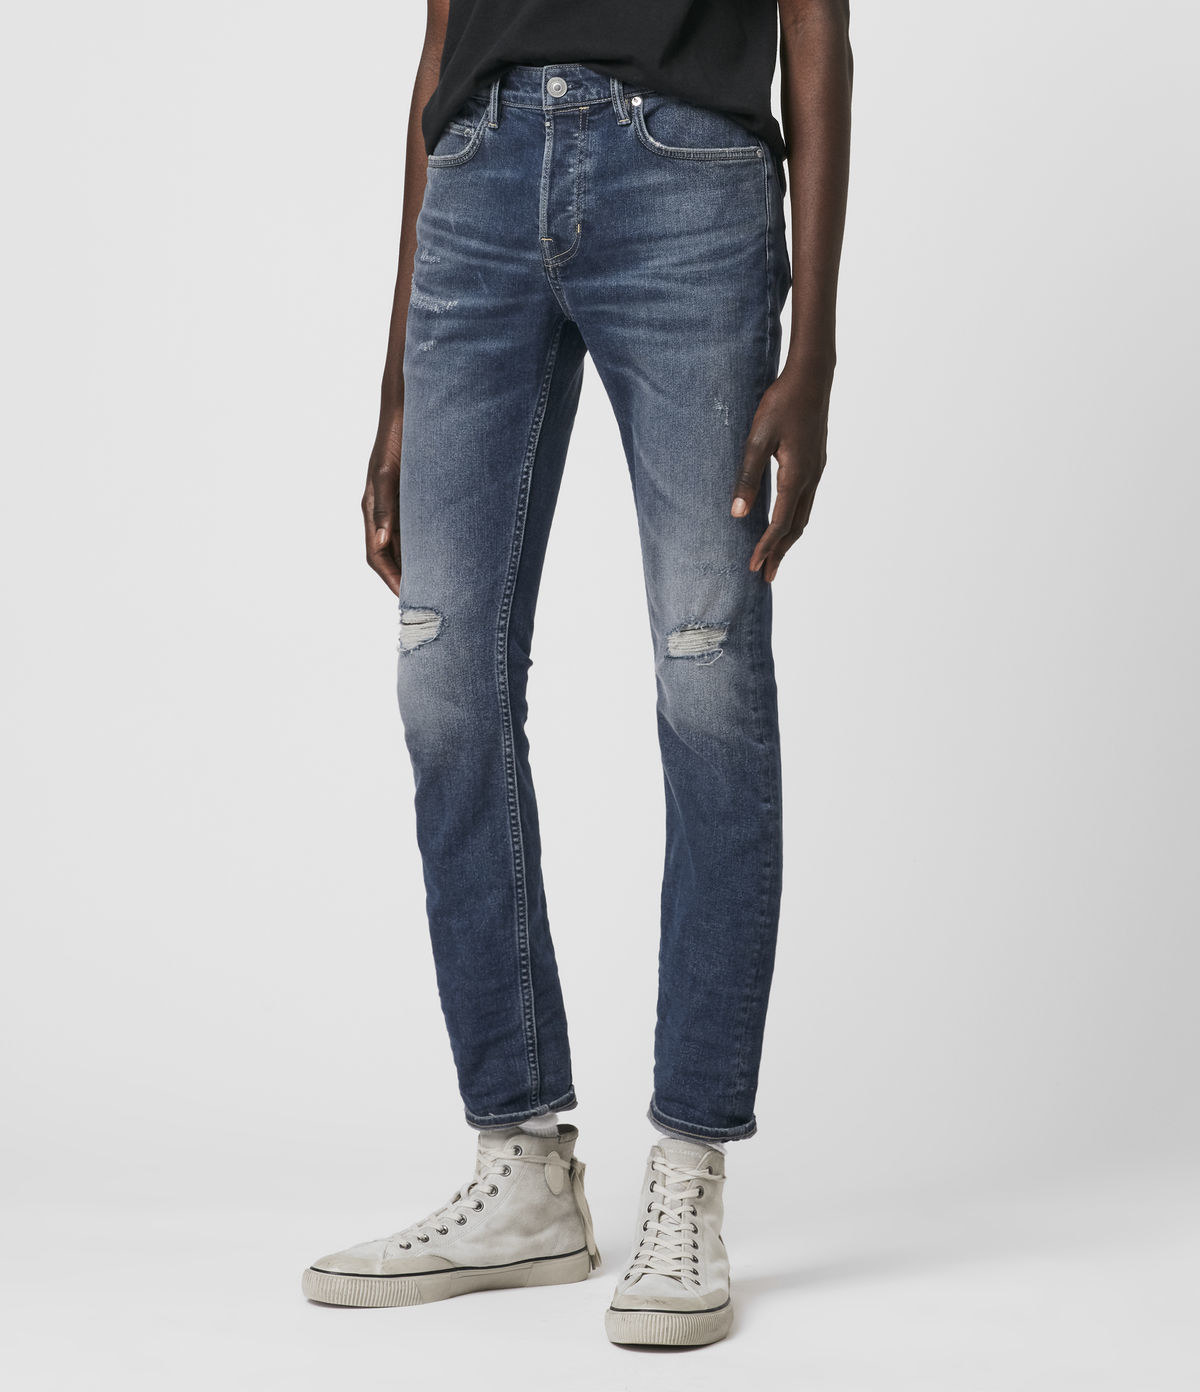 model wearing skinny medium wash jeans with whiskering and rips above the knees with high-top sneakers